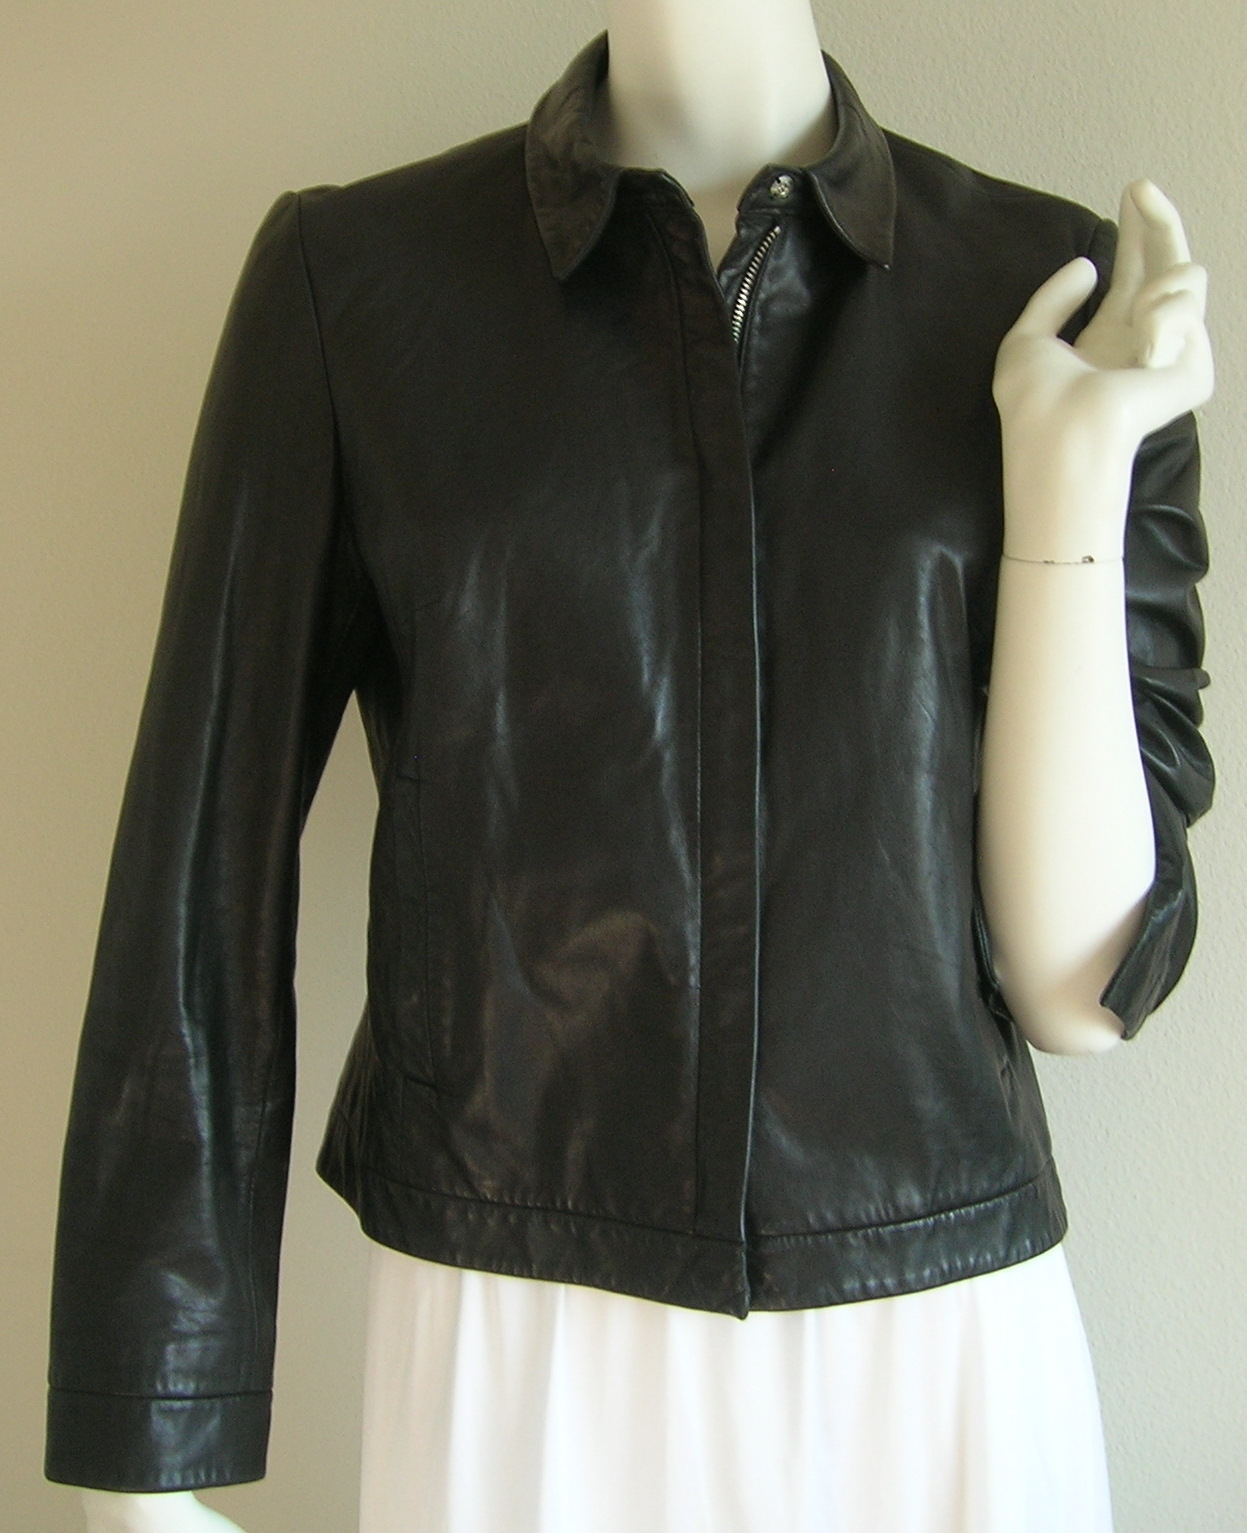 Washable leather jacket